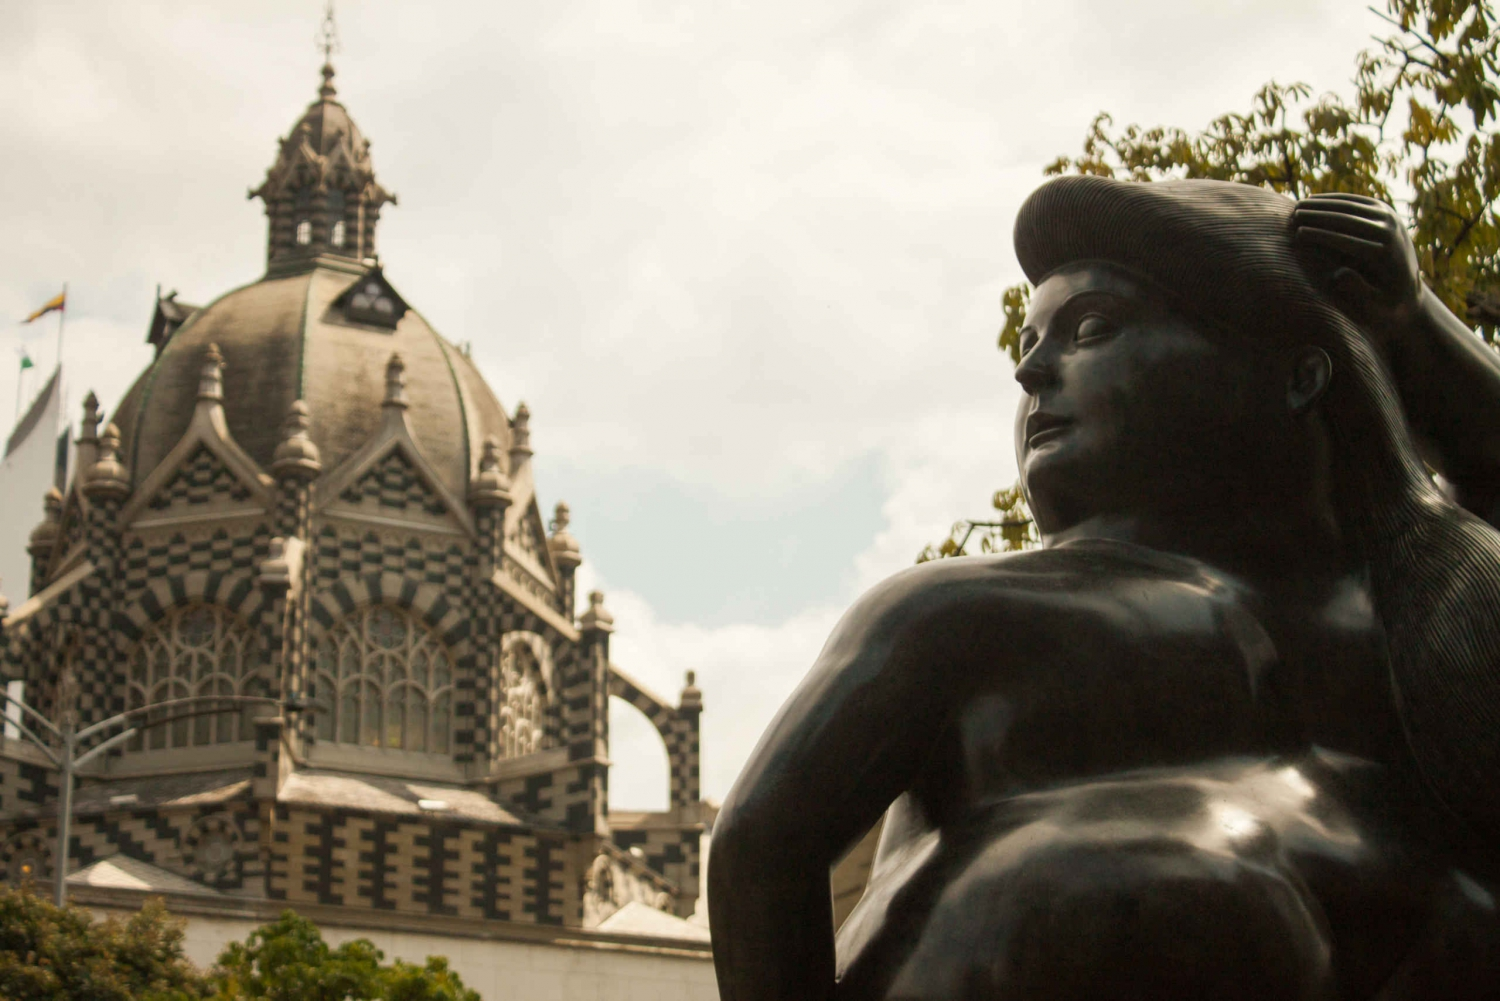 Medellín Walking Tour: Art of Fernando Botero